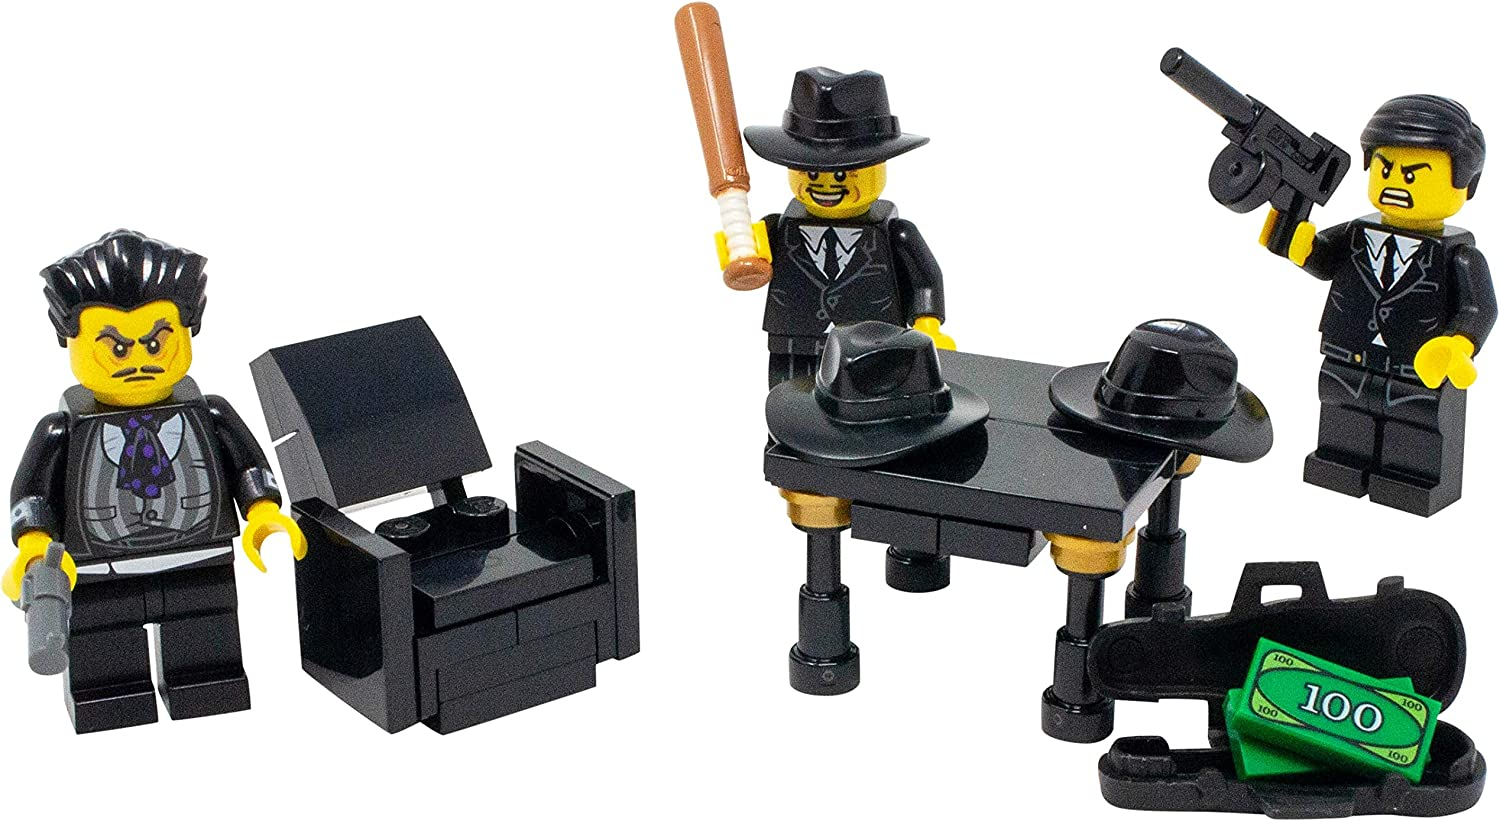 LEGO Mafia Mob Boss, Hitman, and Wise Guy Toy - Custom Criminal Gang Minifigure